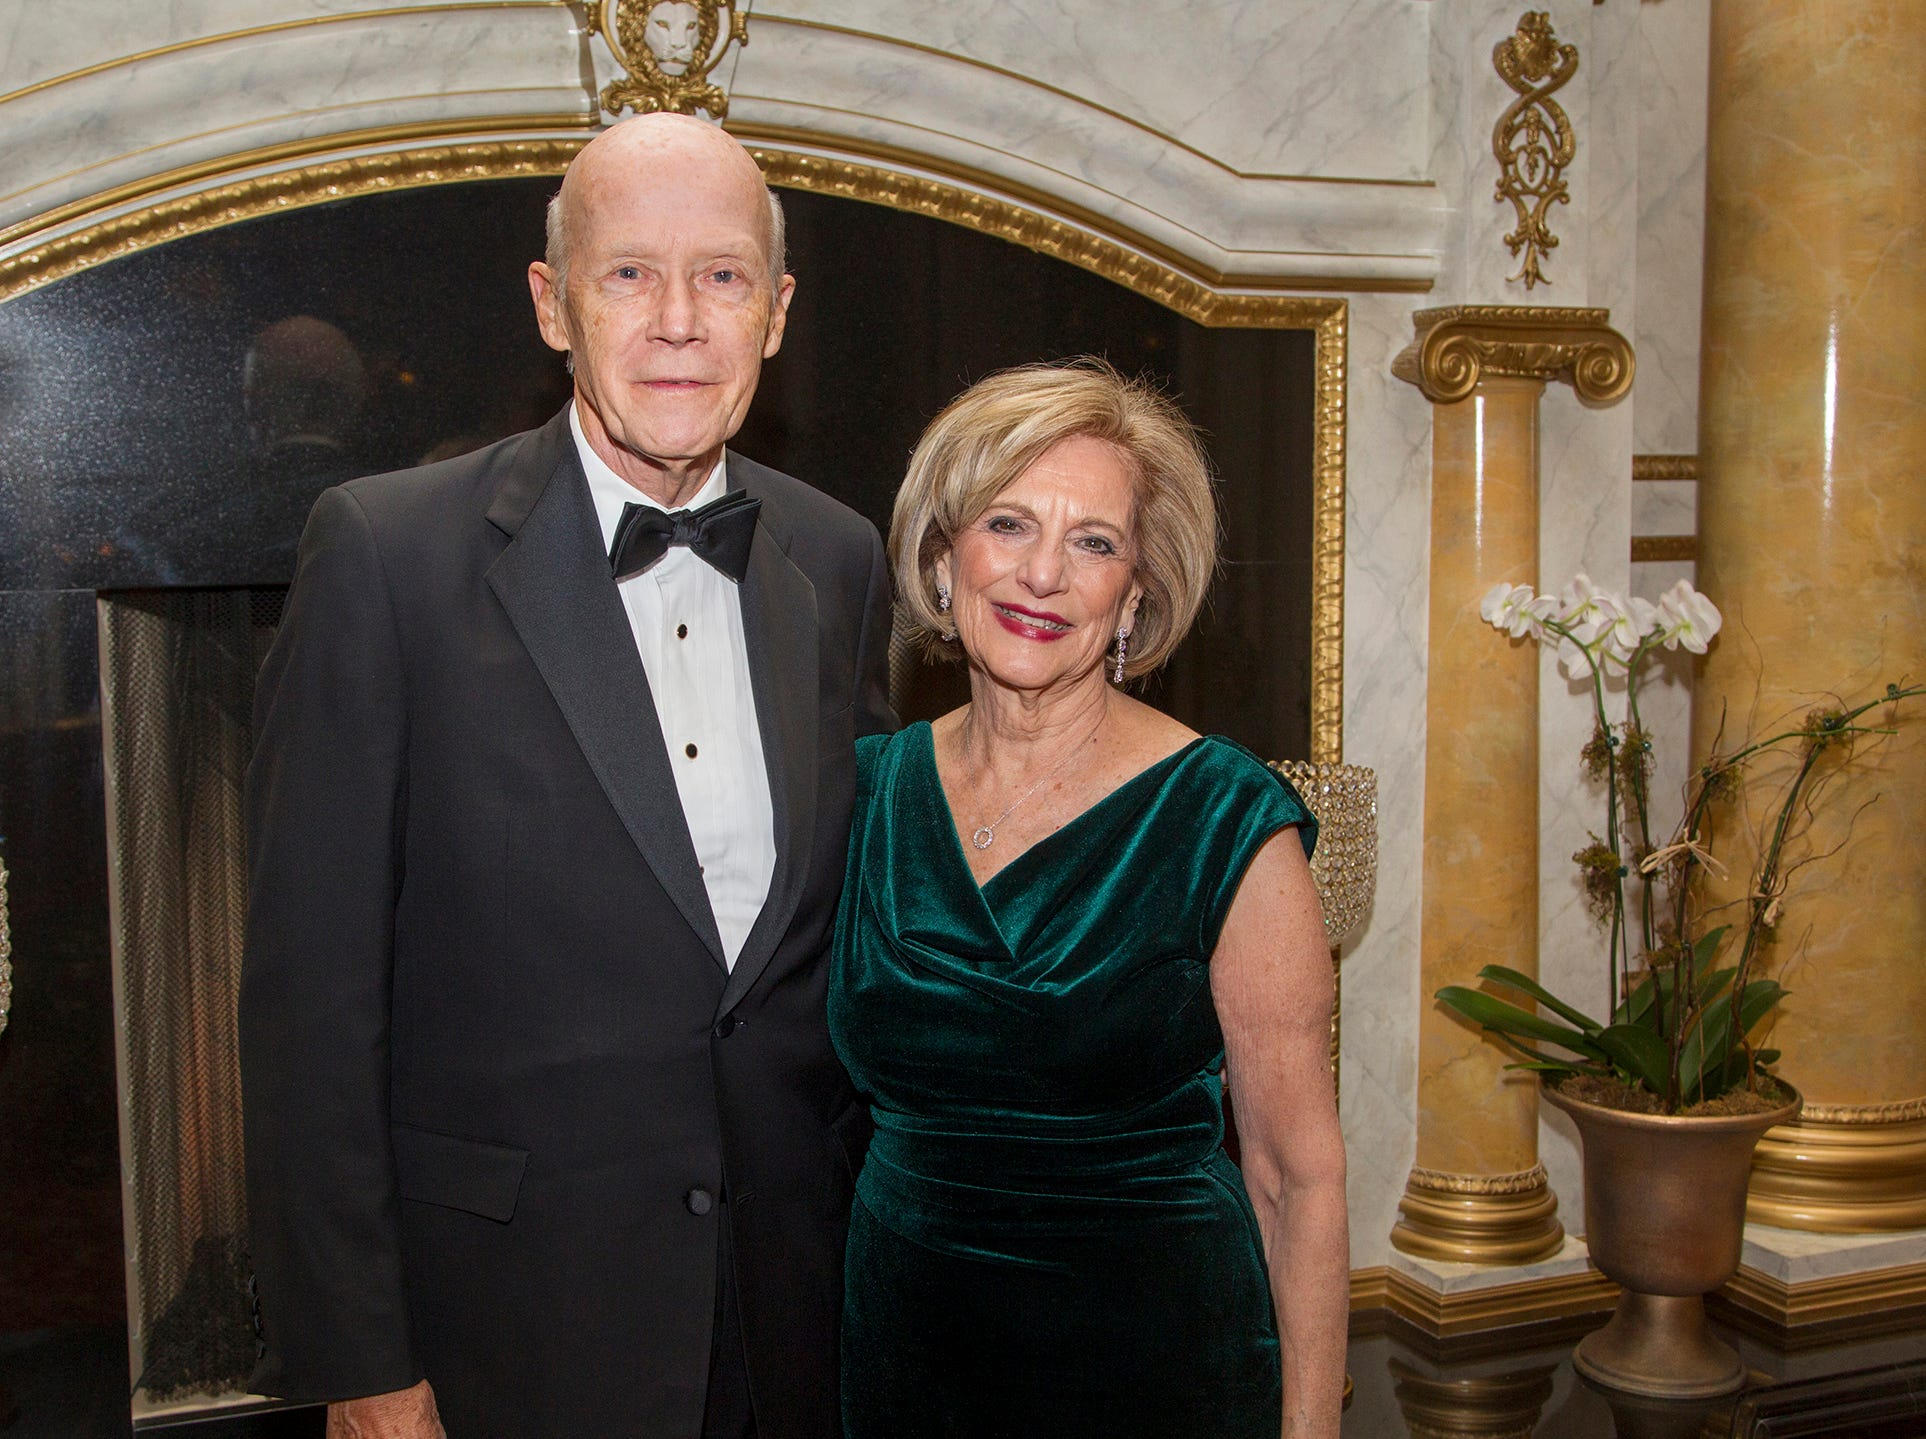 Walt and Lee Jenkins. The 72nd Annual Valley Ball gala at The Legacy Castle in Pompton Plains. 11/16/2018